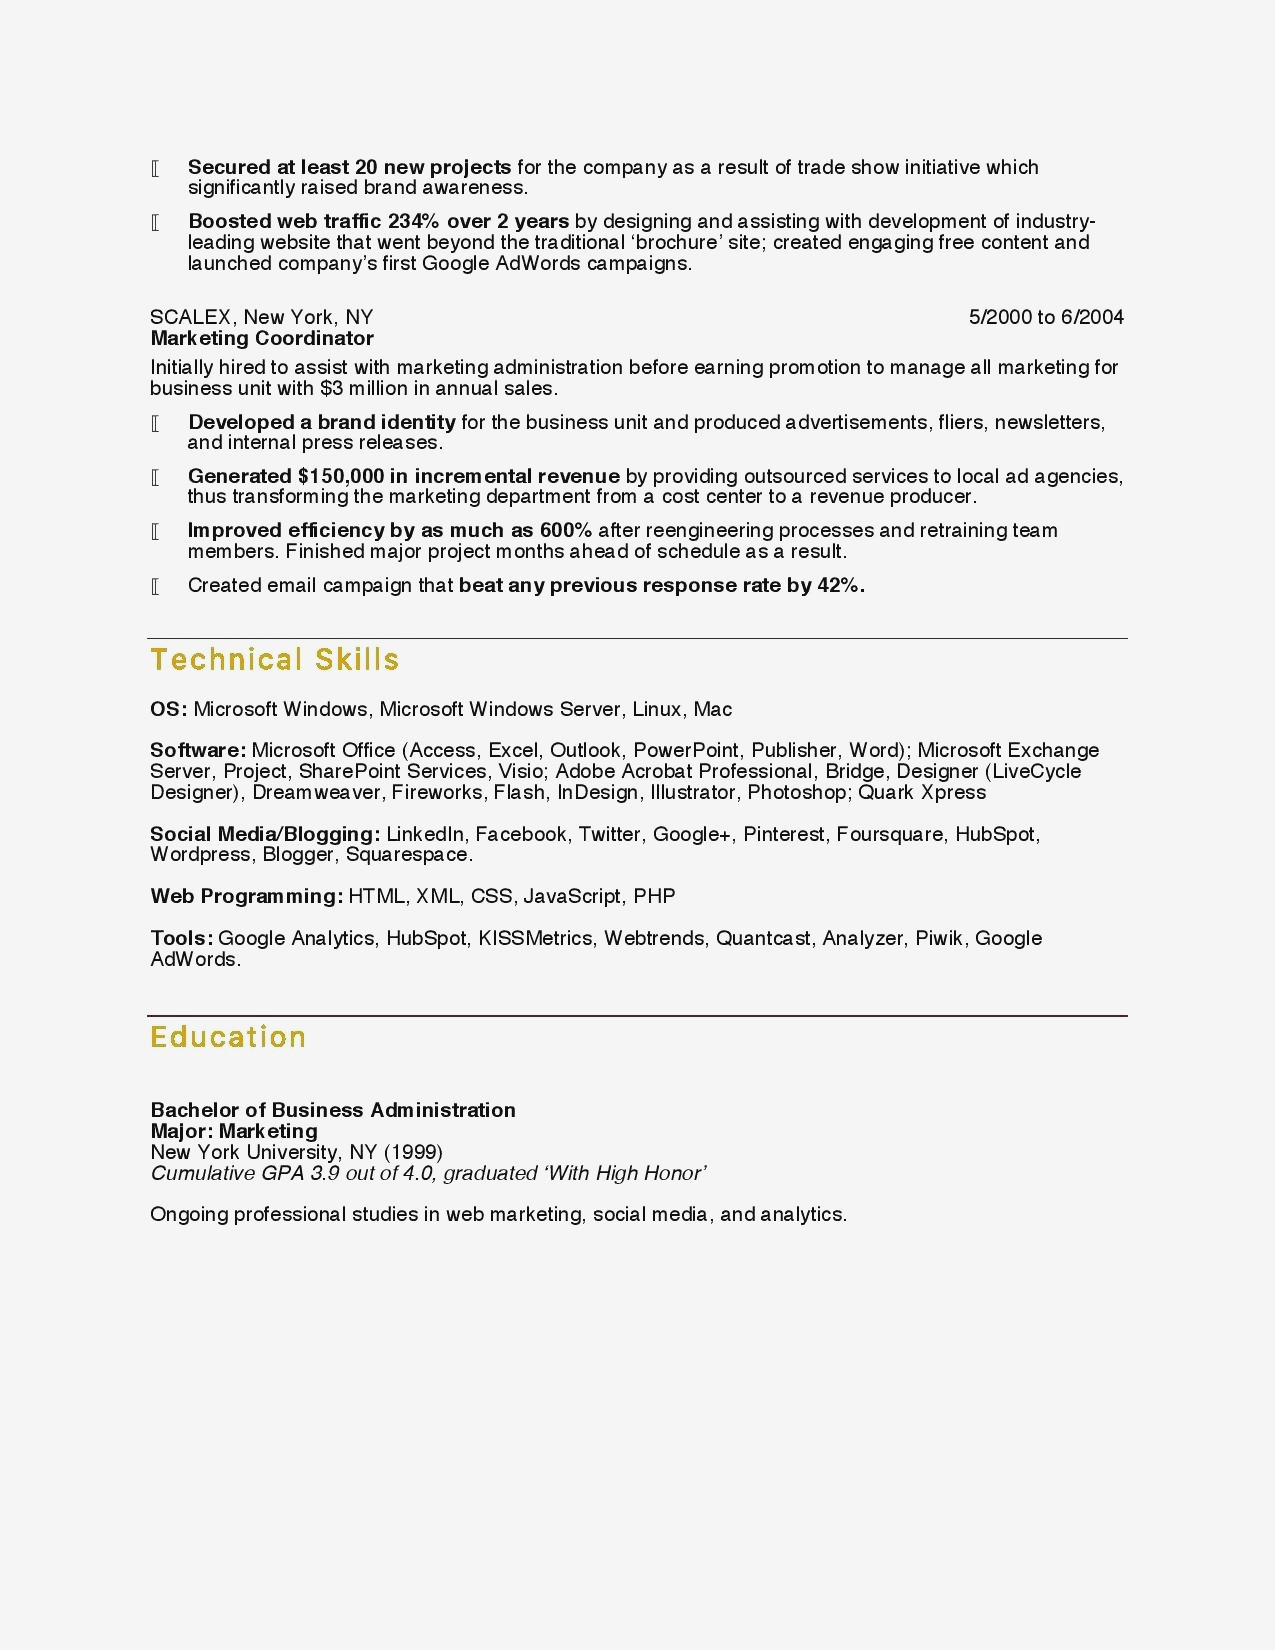 Resume Builder Free Online - Free Line Resume Templates Word Line Resume Builder Free Luxury